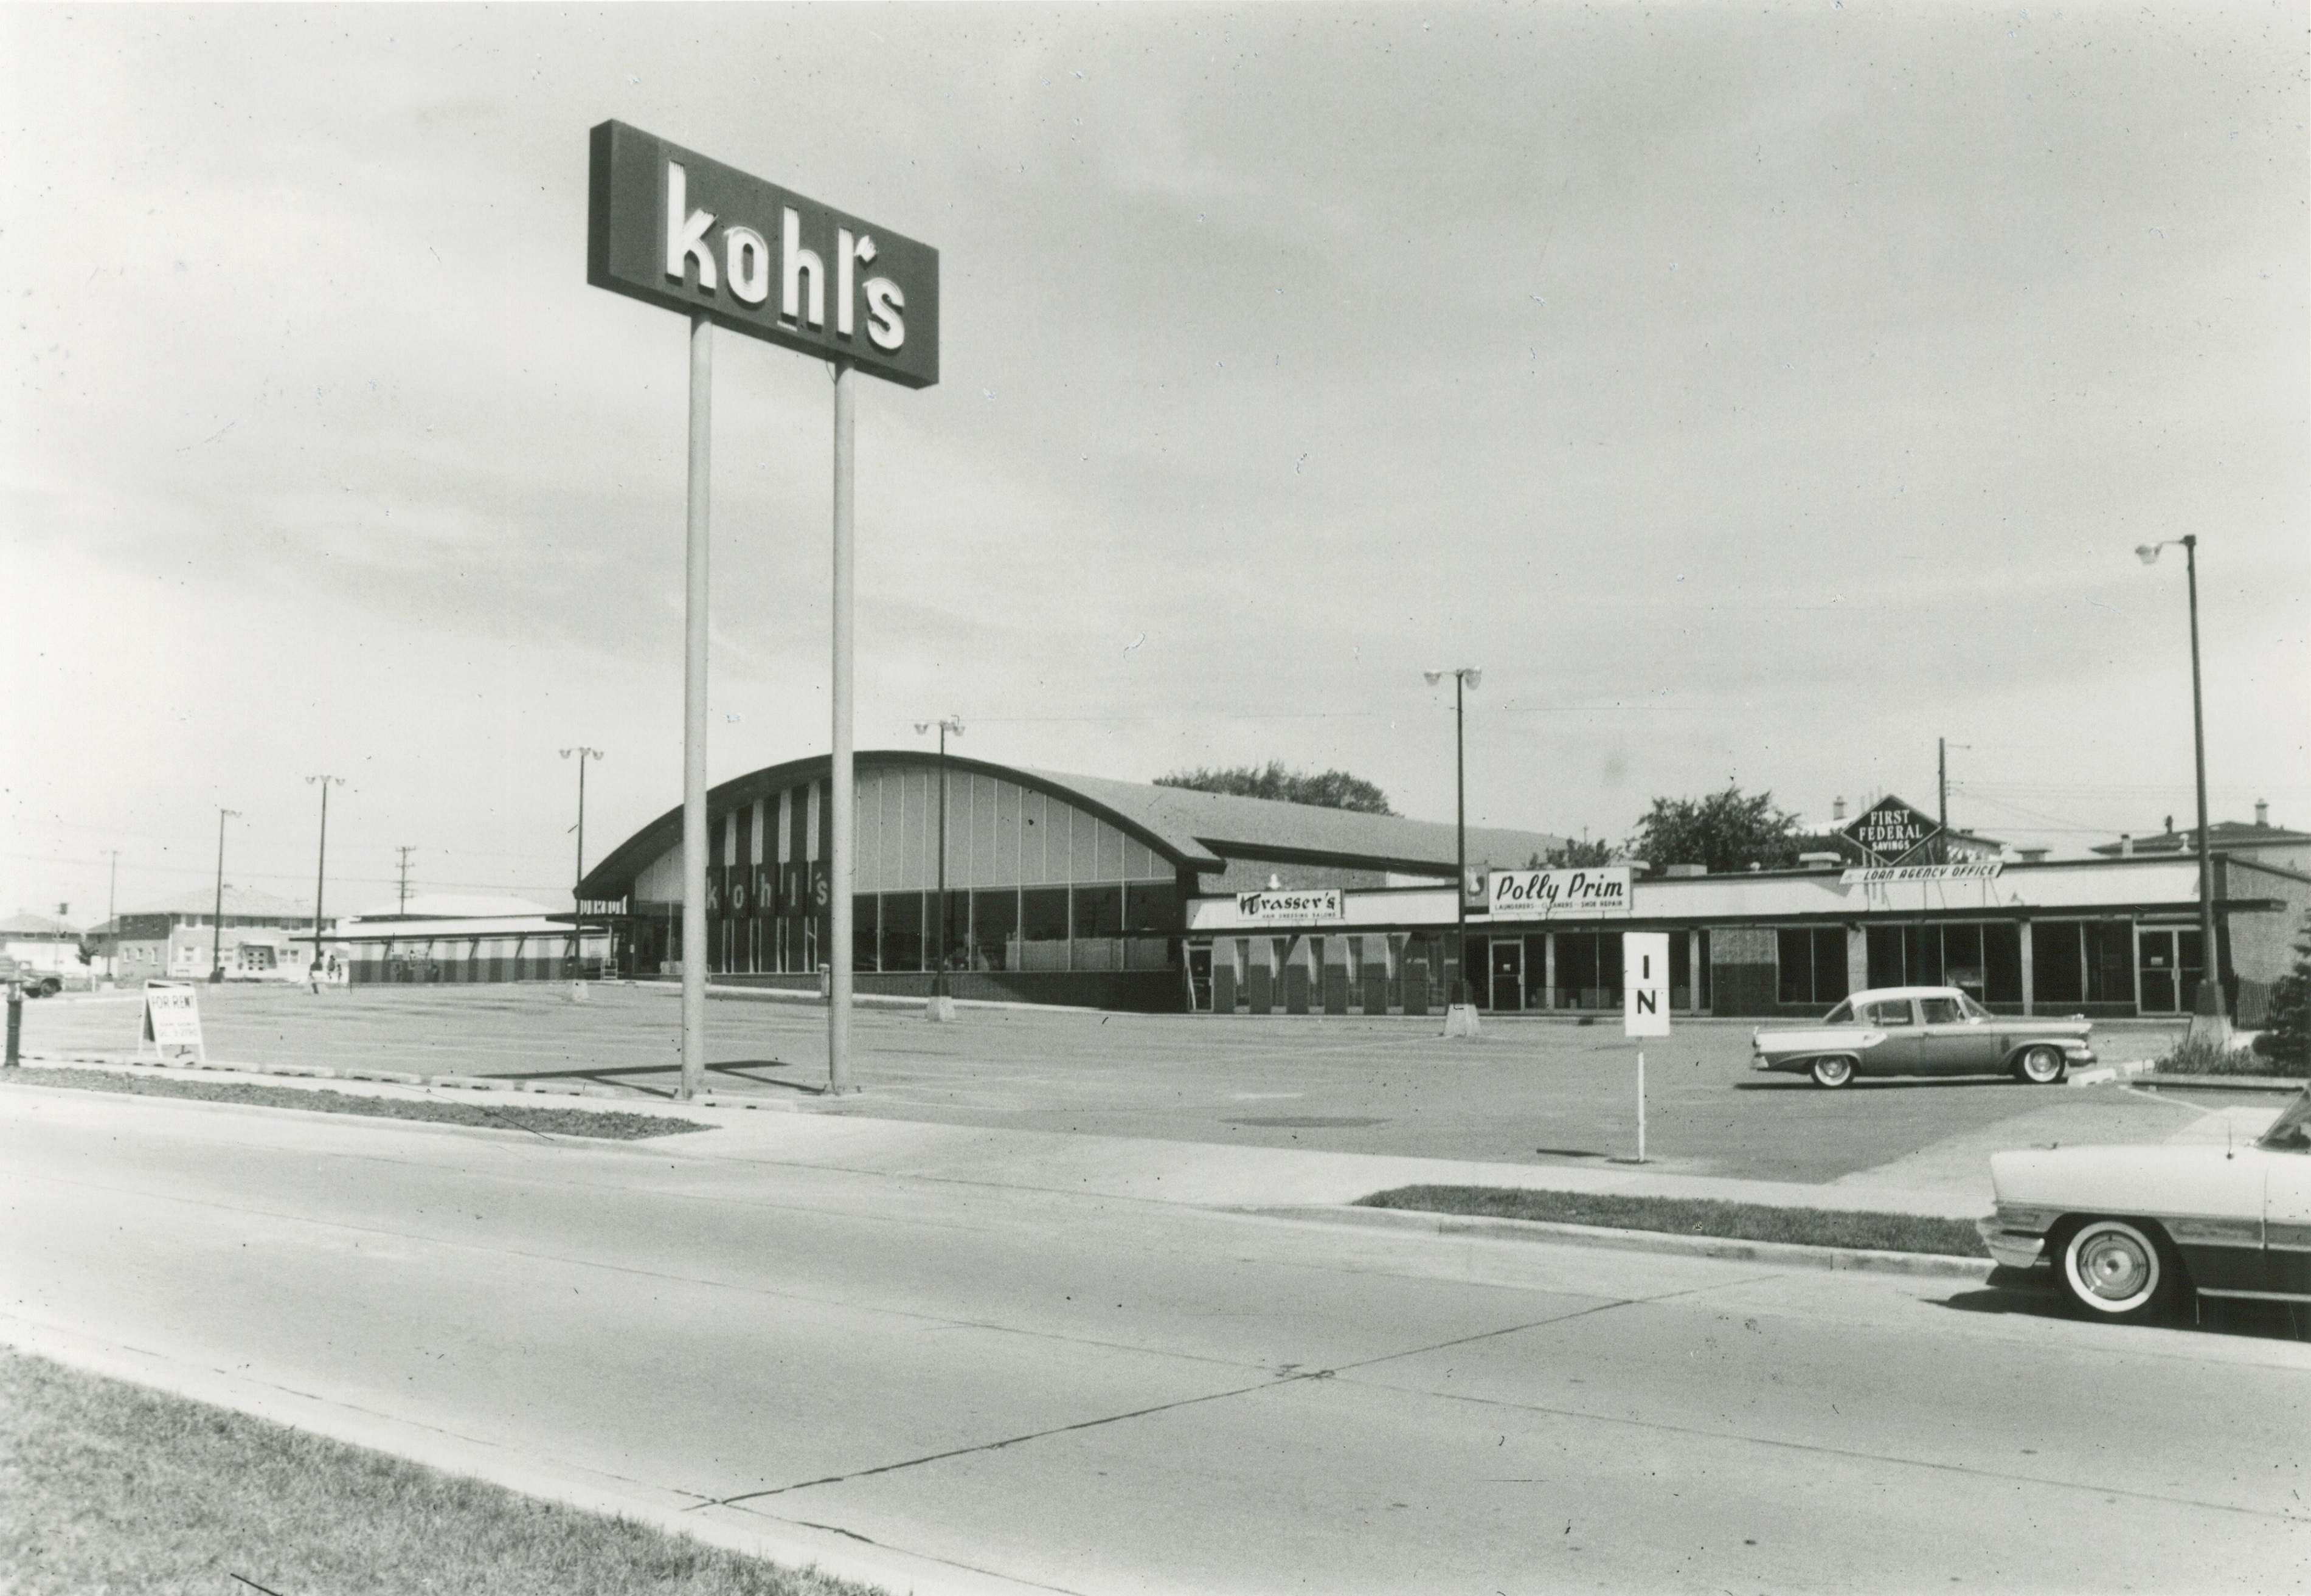 <table class=&quot;lightbox&quot;><tr><td colspan=2 class=&quot;lightbox-title&quot;>Kohl's Food Store</td></tr><tr><td colspan=2 class=&quot;lightbox-caption&quot;>Prior to transition to a department store, Kohl's grocery stores, like this one on 64th and Silver Spring, were located throughout Milwaukee. </td></tr><tr><td colspan=2 class=&quot;lightbox-spacer&quot;></td></tr><tr class=&quot;lightbox-detail&quot;><td class=&quot;cell-title&quot;>Source: </td><td class=&quot;cell-value&quot;>From the Historic Photo Collection of the Milwaukee Public Library. Reprinted with permission. <br /><a href=&quot;http://content.mpl.org/cdm/singleitem/collection/HstoricPho/id/4352/rec/1&quot; target=&quot;_blank&quot;>Milwaukee Public Library</a></td></tr><tr class=&quot;filler-row&quot;><td colspan=2>&nbsp;</td></tr></table>